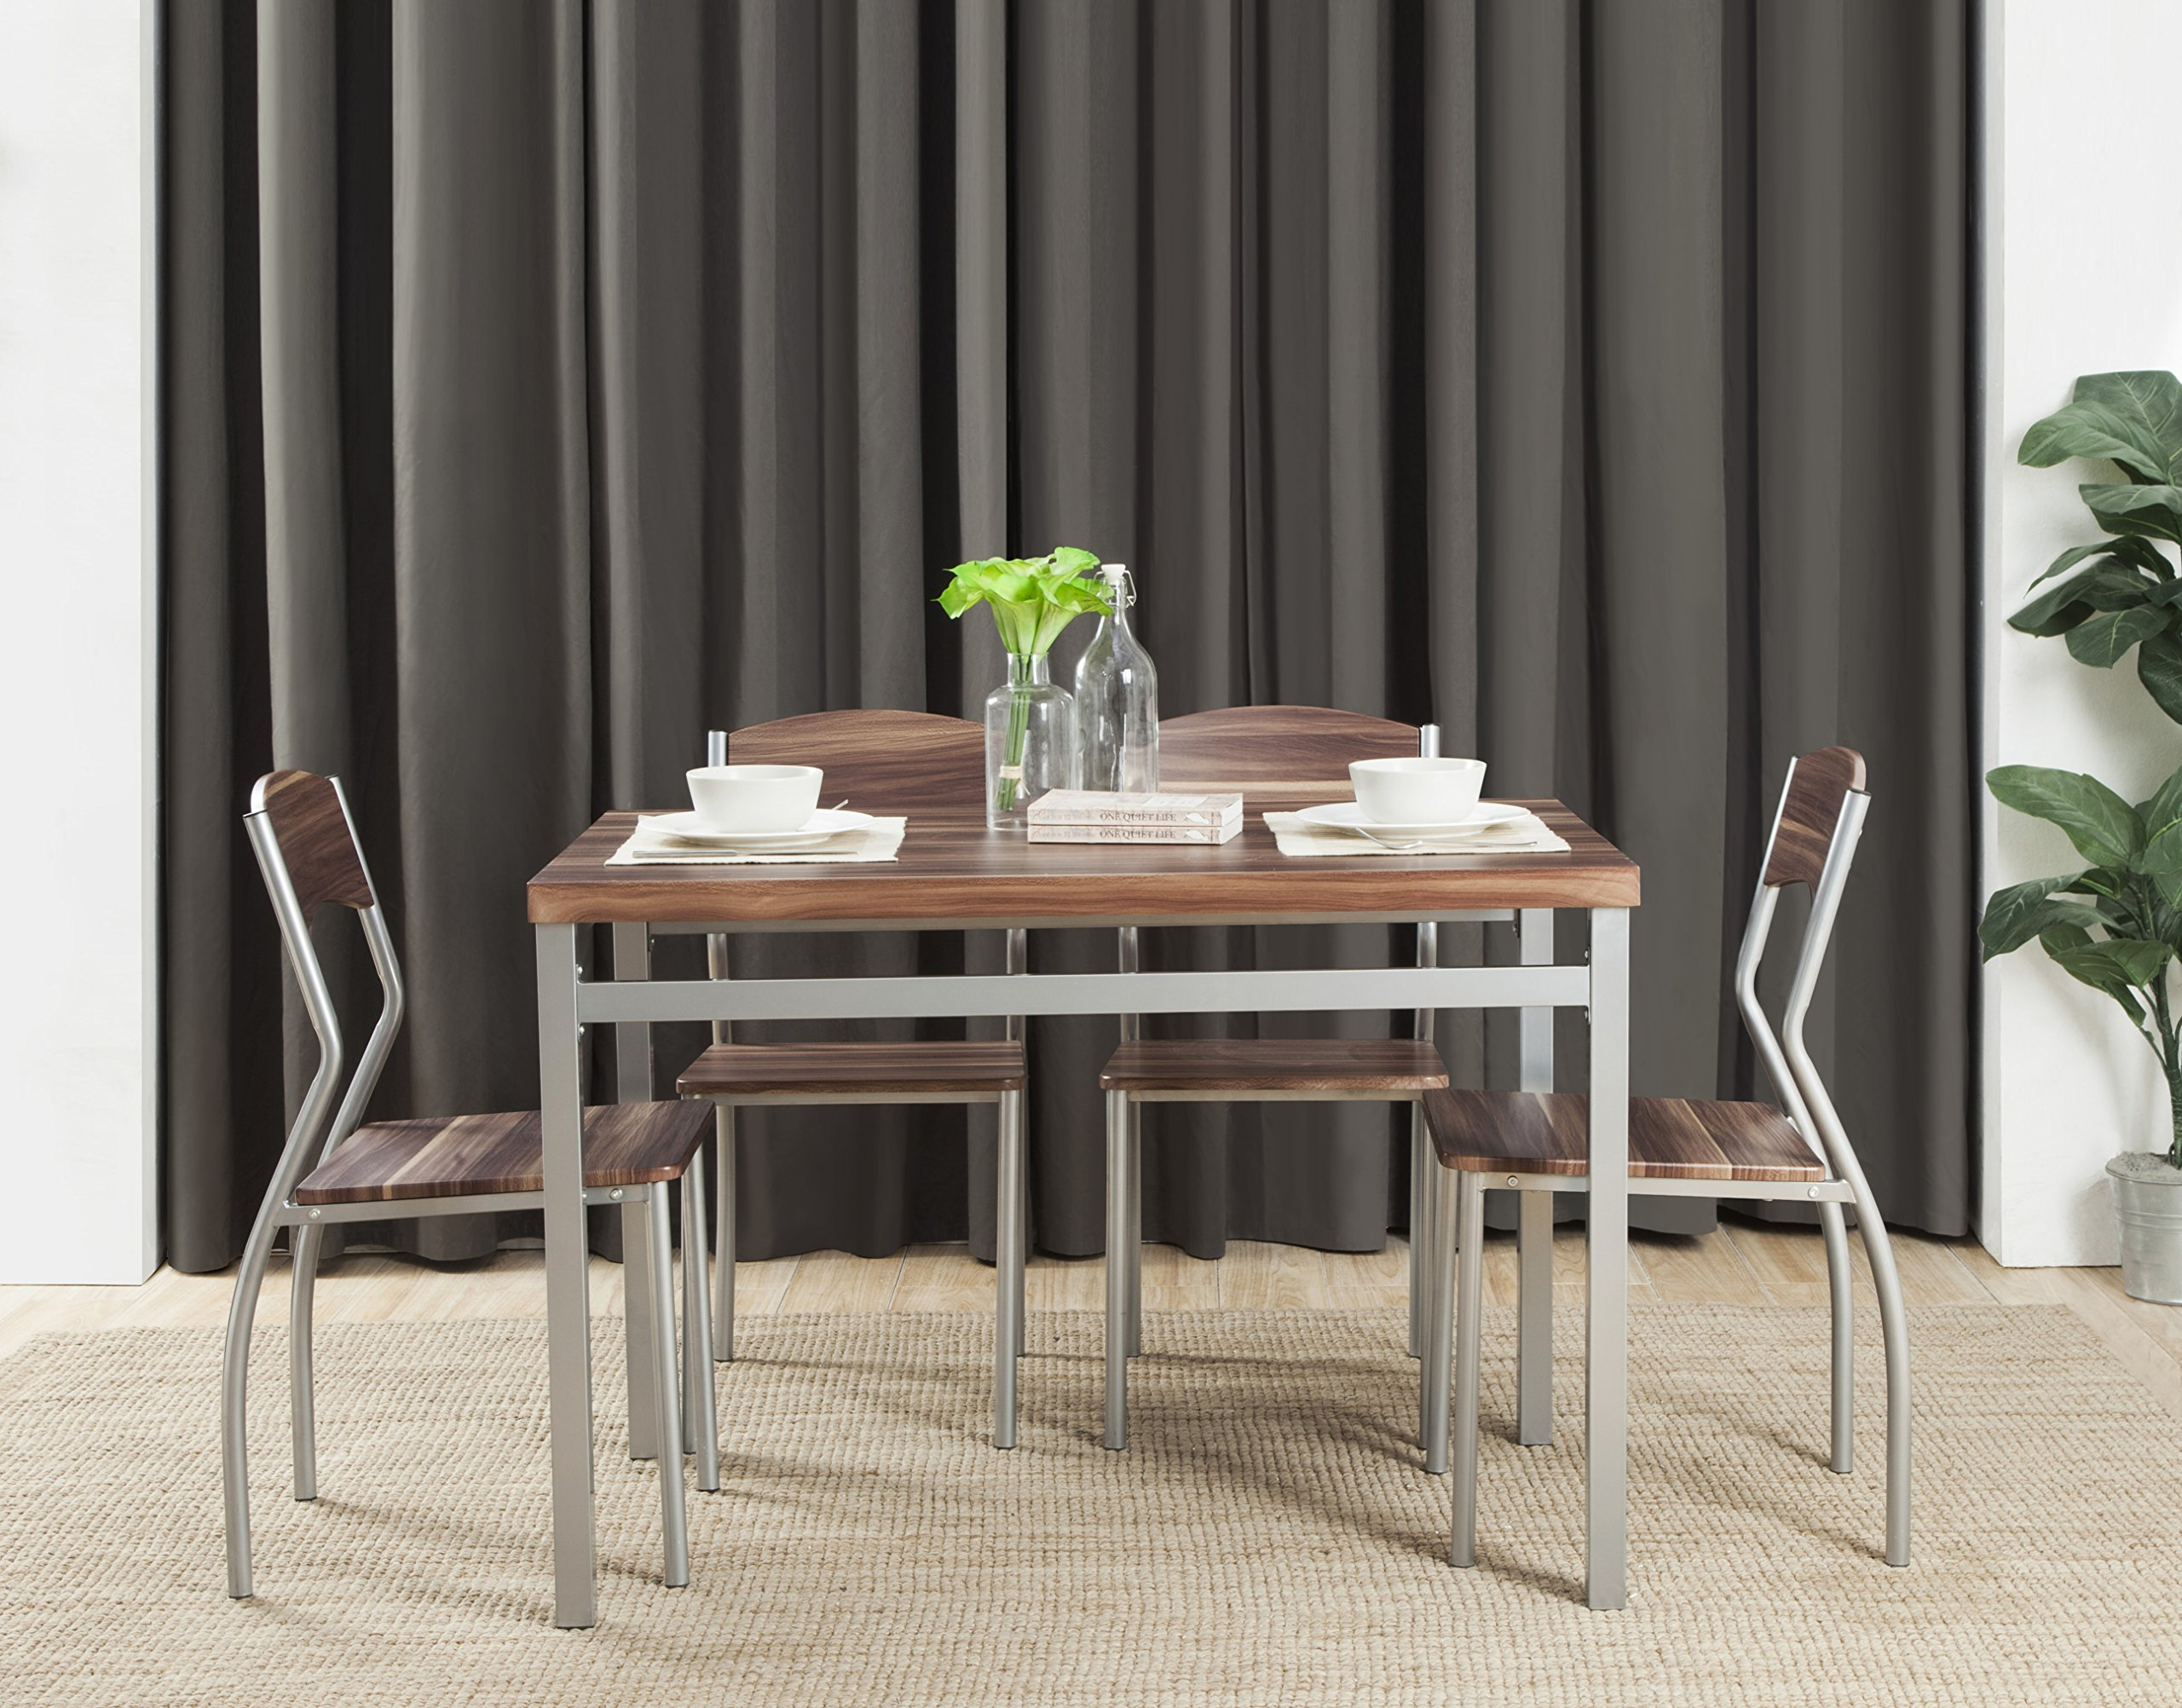 Abington Lane 5-Piece Dining Table Set with 4 Chairs - Modern and Sleek Dinette (Cedarwood Finish) by Abington Lane (Image #3)